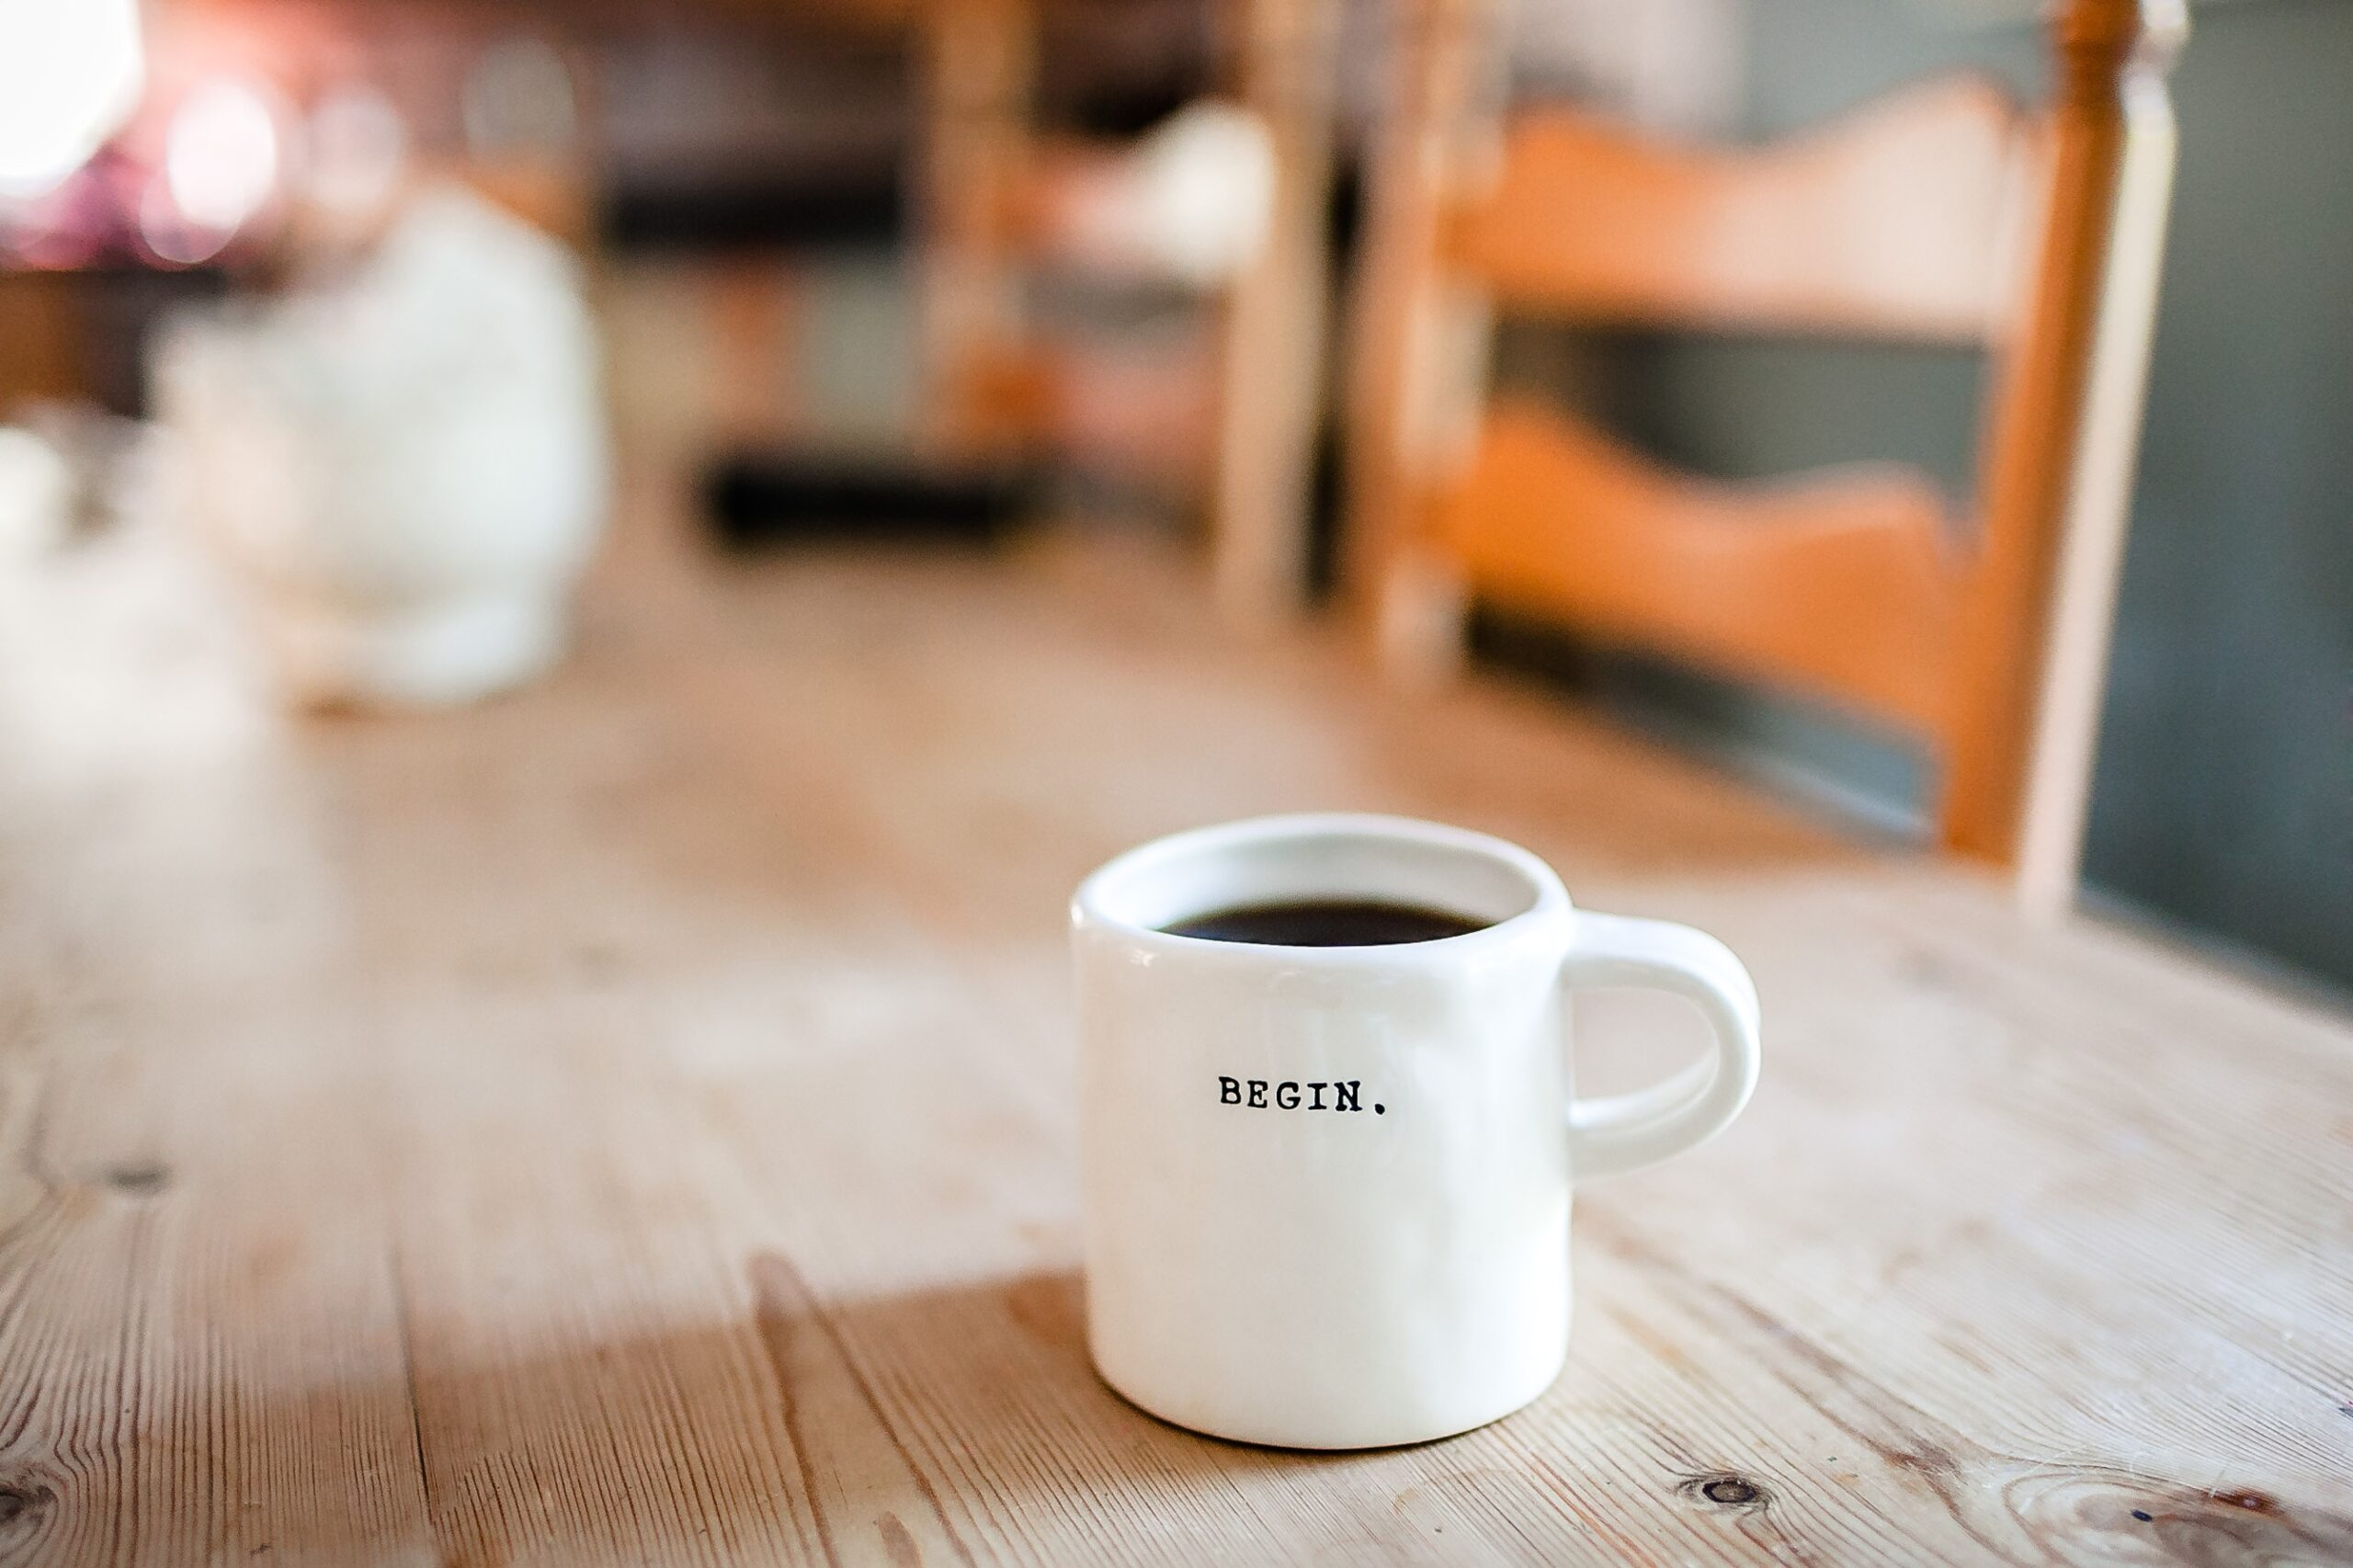 A full coffee cup basking in beautiful natural light from a window, with the word Begin